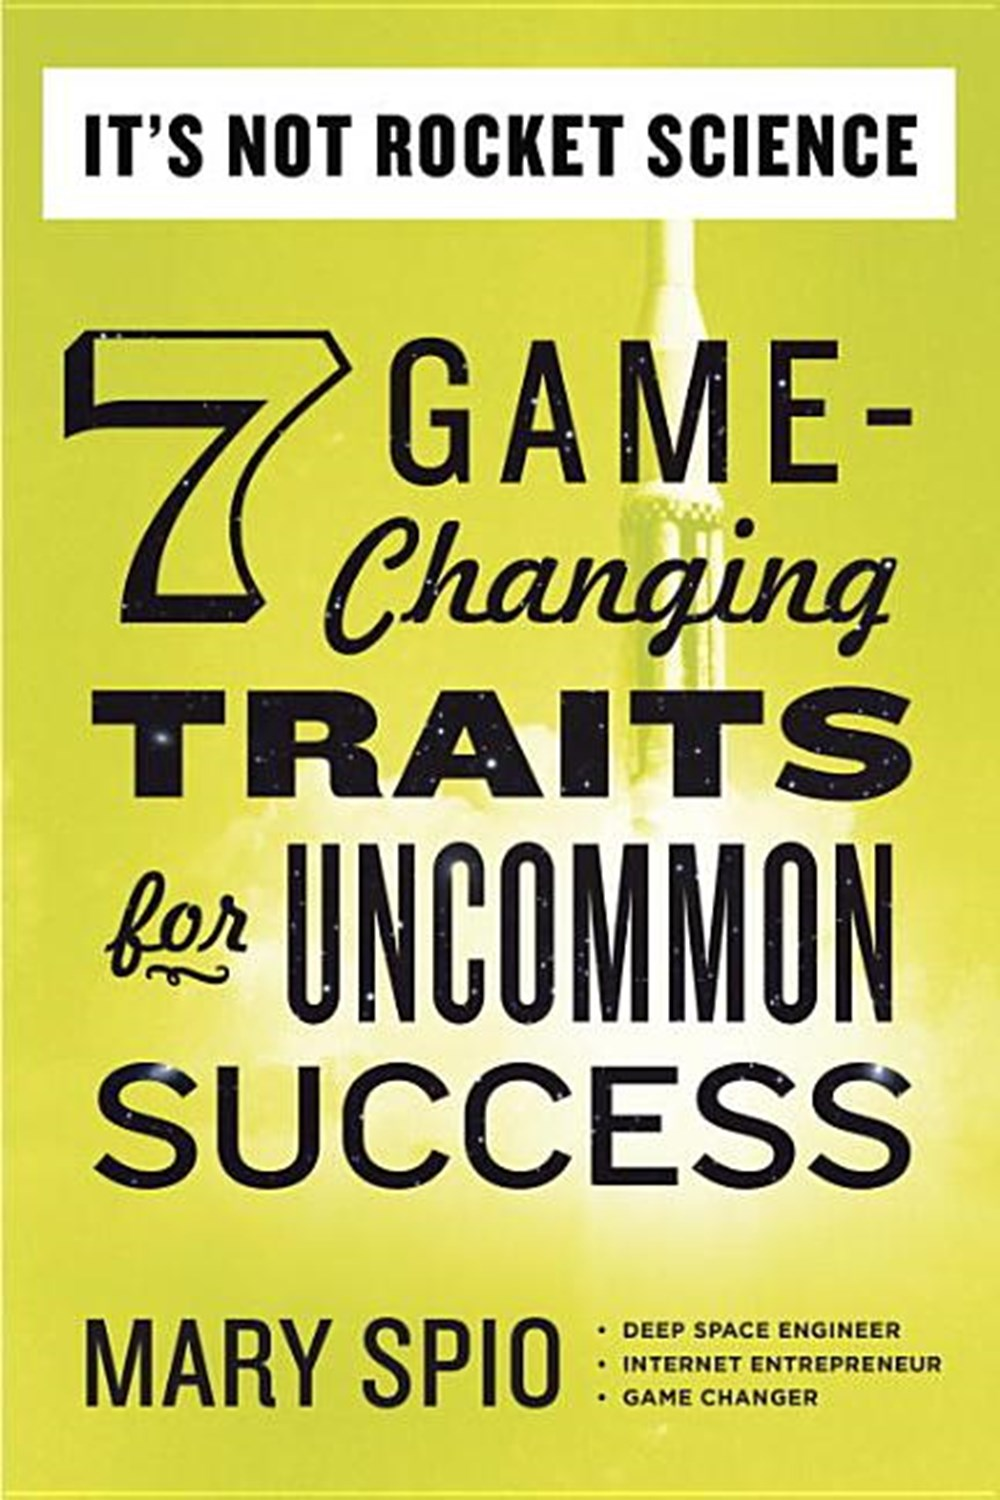 It's Not Rocket Science 7 Game-Changing Traits for Uncommon Success